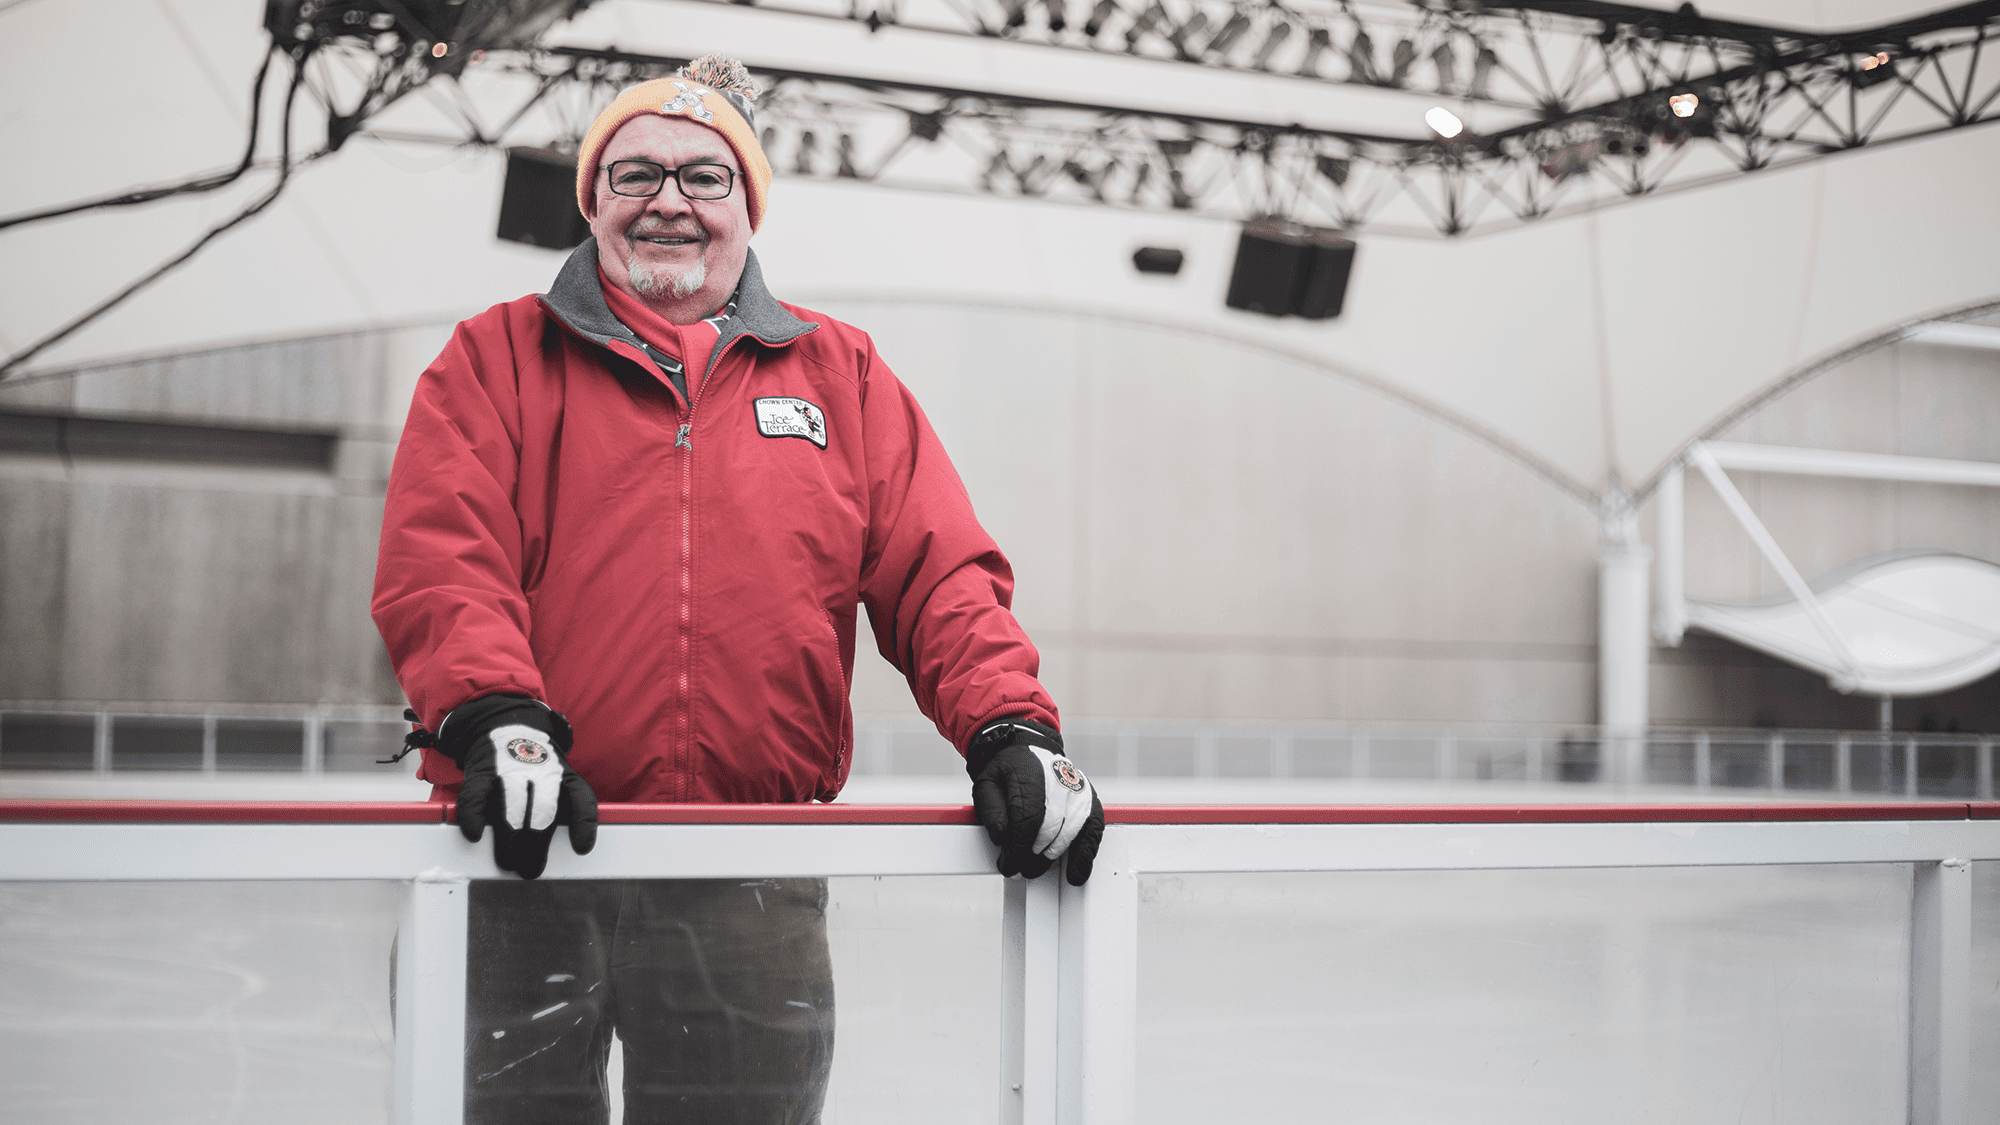 Crown Center ice rink attendant Joe Lynch